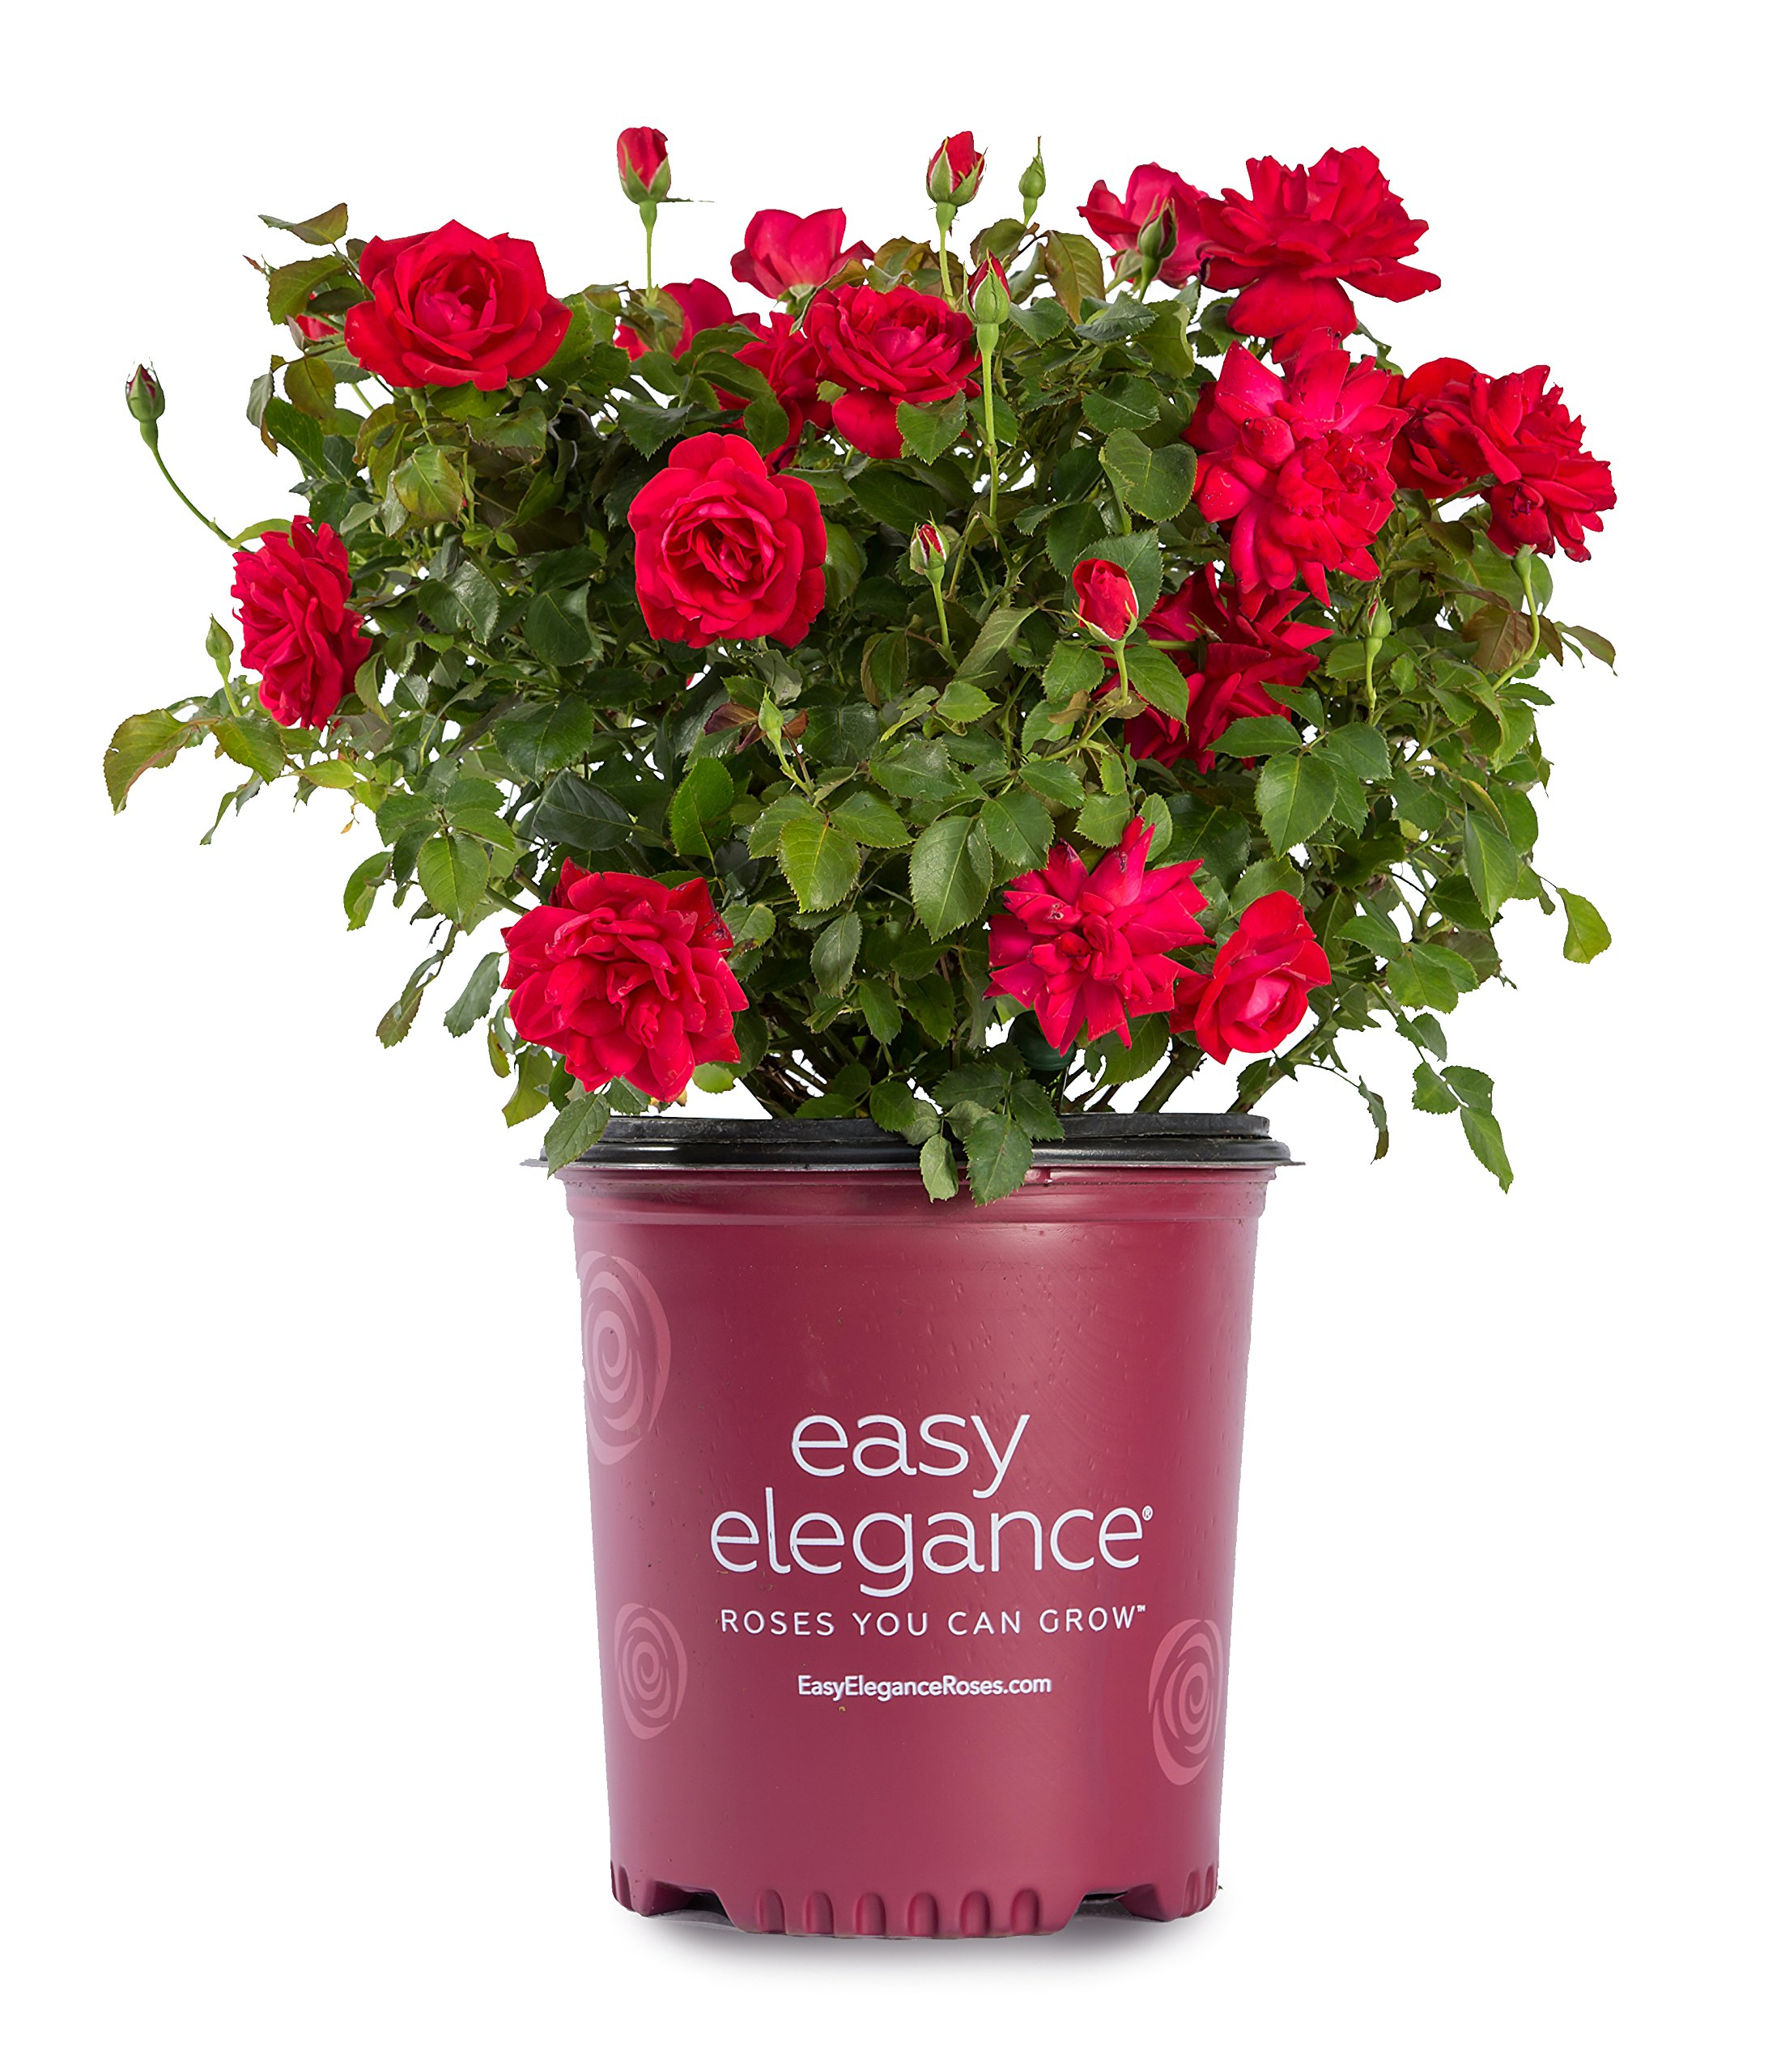 Easy Elegance Roses - Rosa Super Hero (Rose) Rose, red flowers, #2 - Size Container by Green Promise Farms (Image #1)